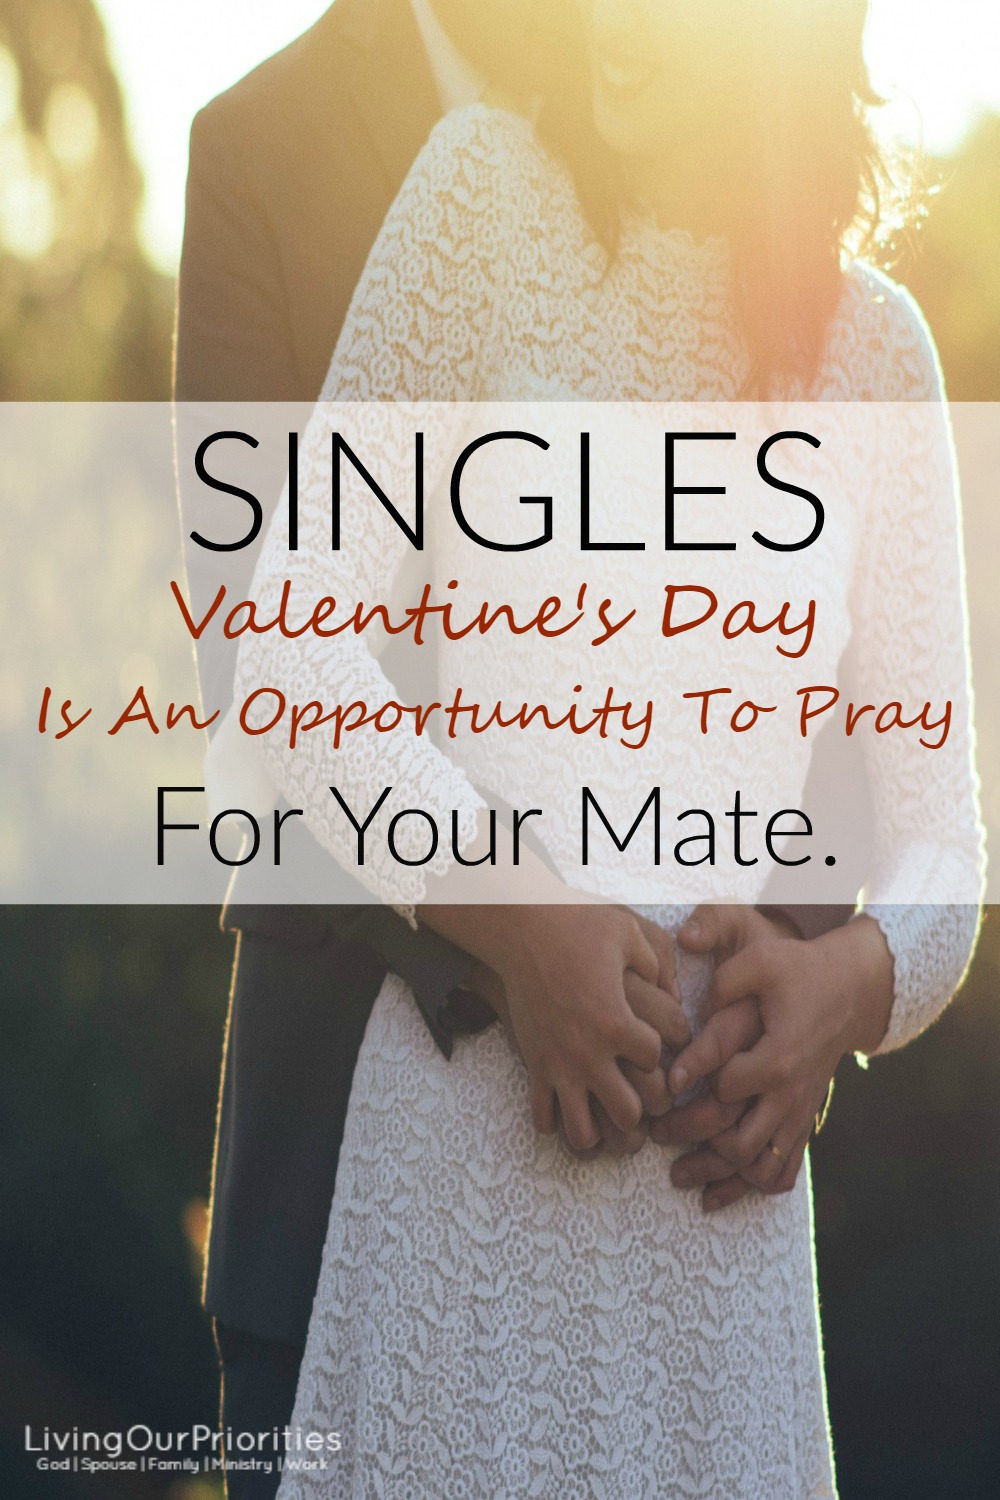 Valentineu0027s Day Is Not Single Awareness Day! Itu0027s An Opportunity To Pray  For Your Future